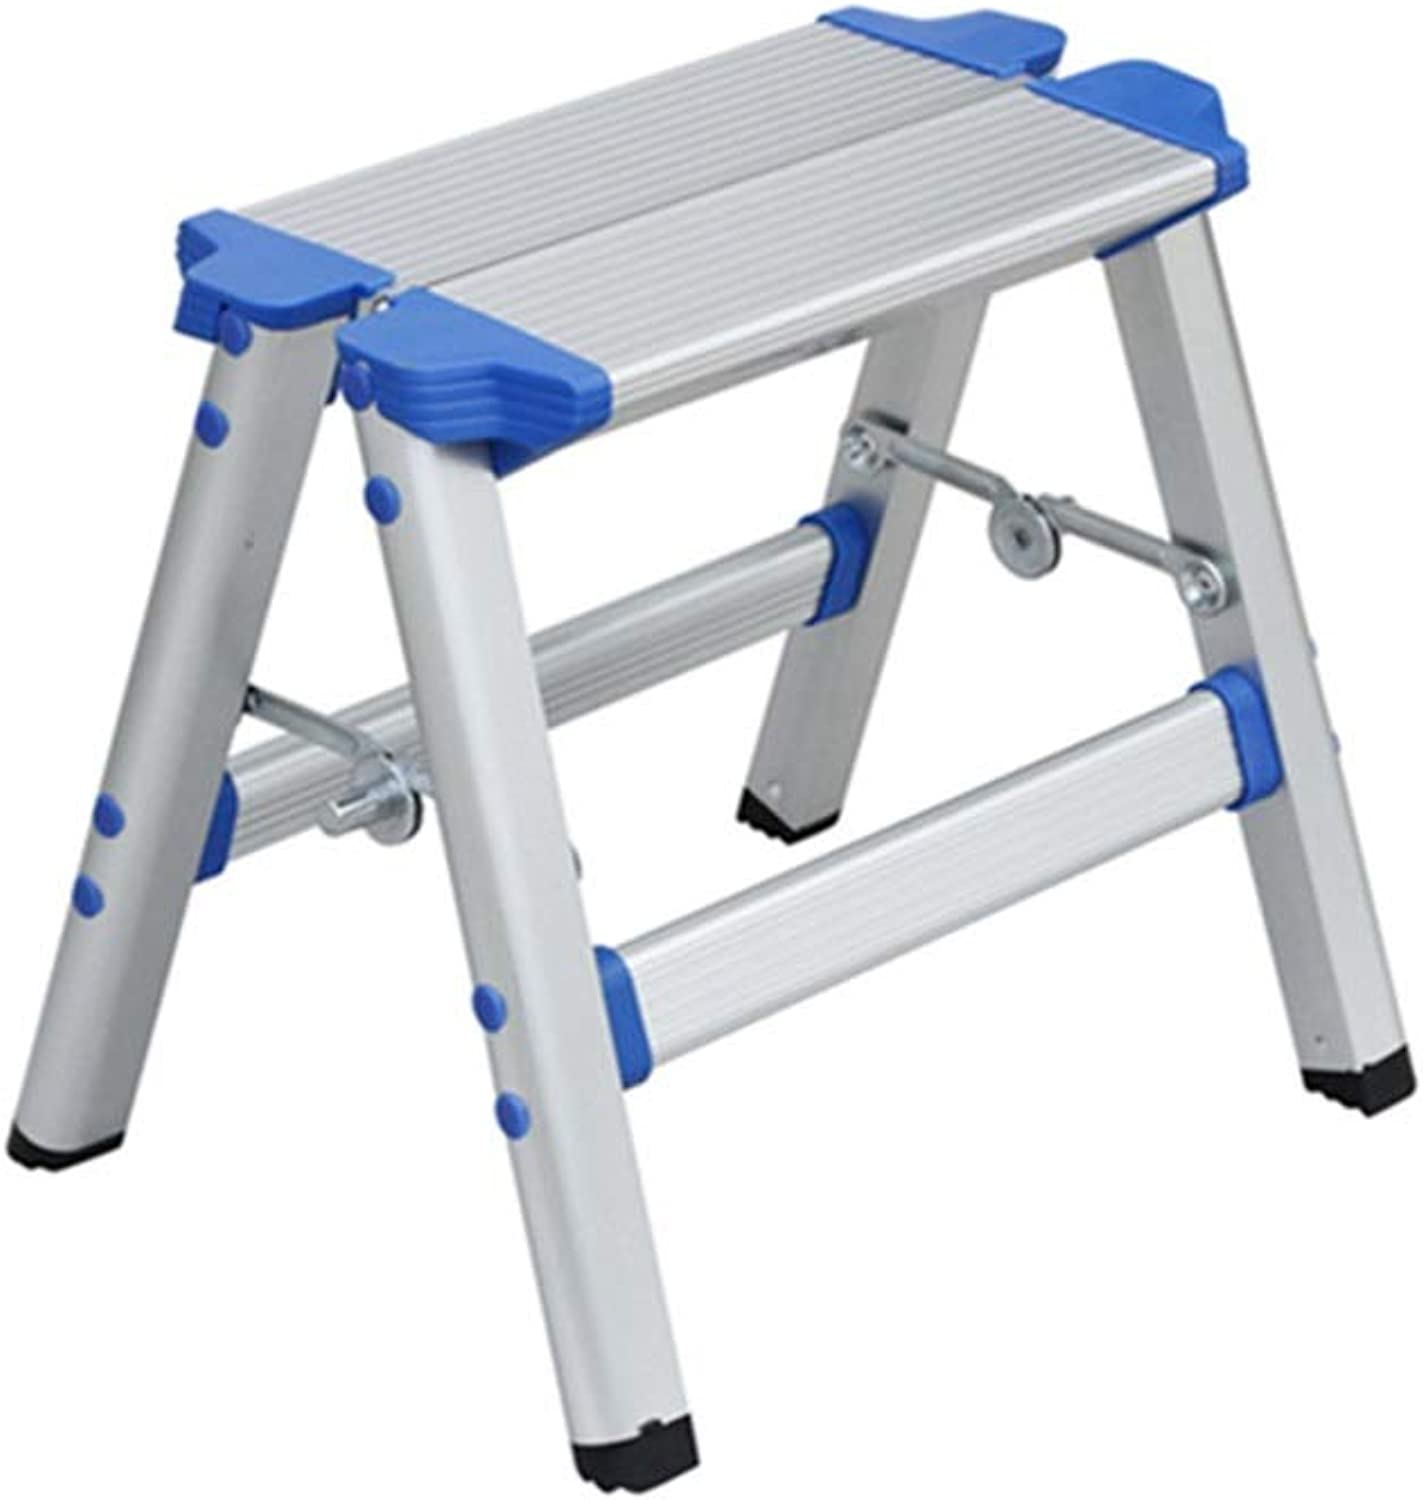 Timber Stool Double Step Stool Folding,Household Aluminum Folding 2 Step Ladder,Lightweight Non Slip Chair Dualuse Pony Stool, For Caravan Motorhome Kitchen